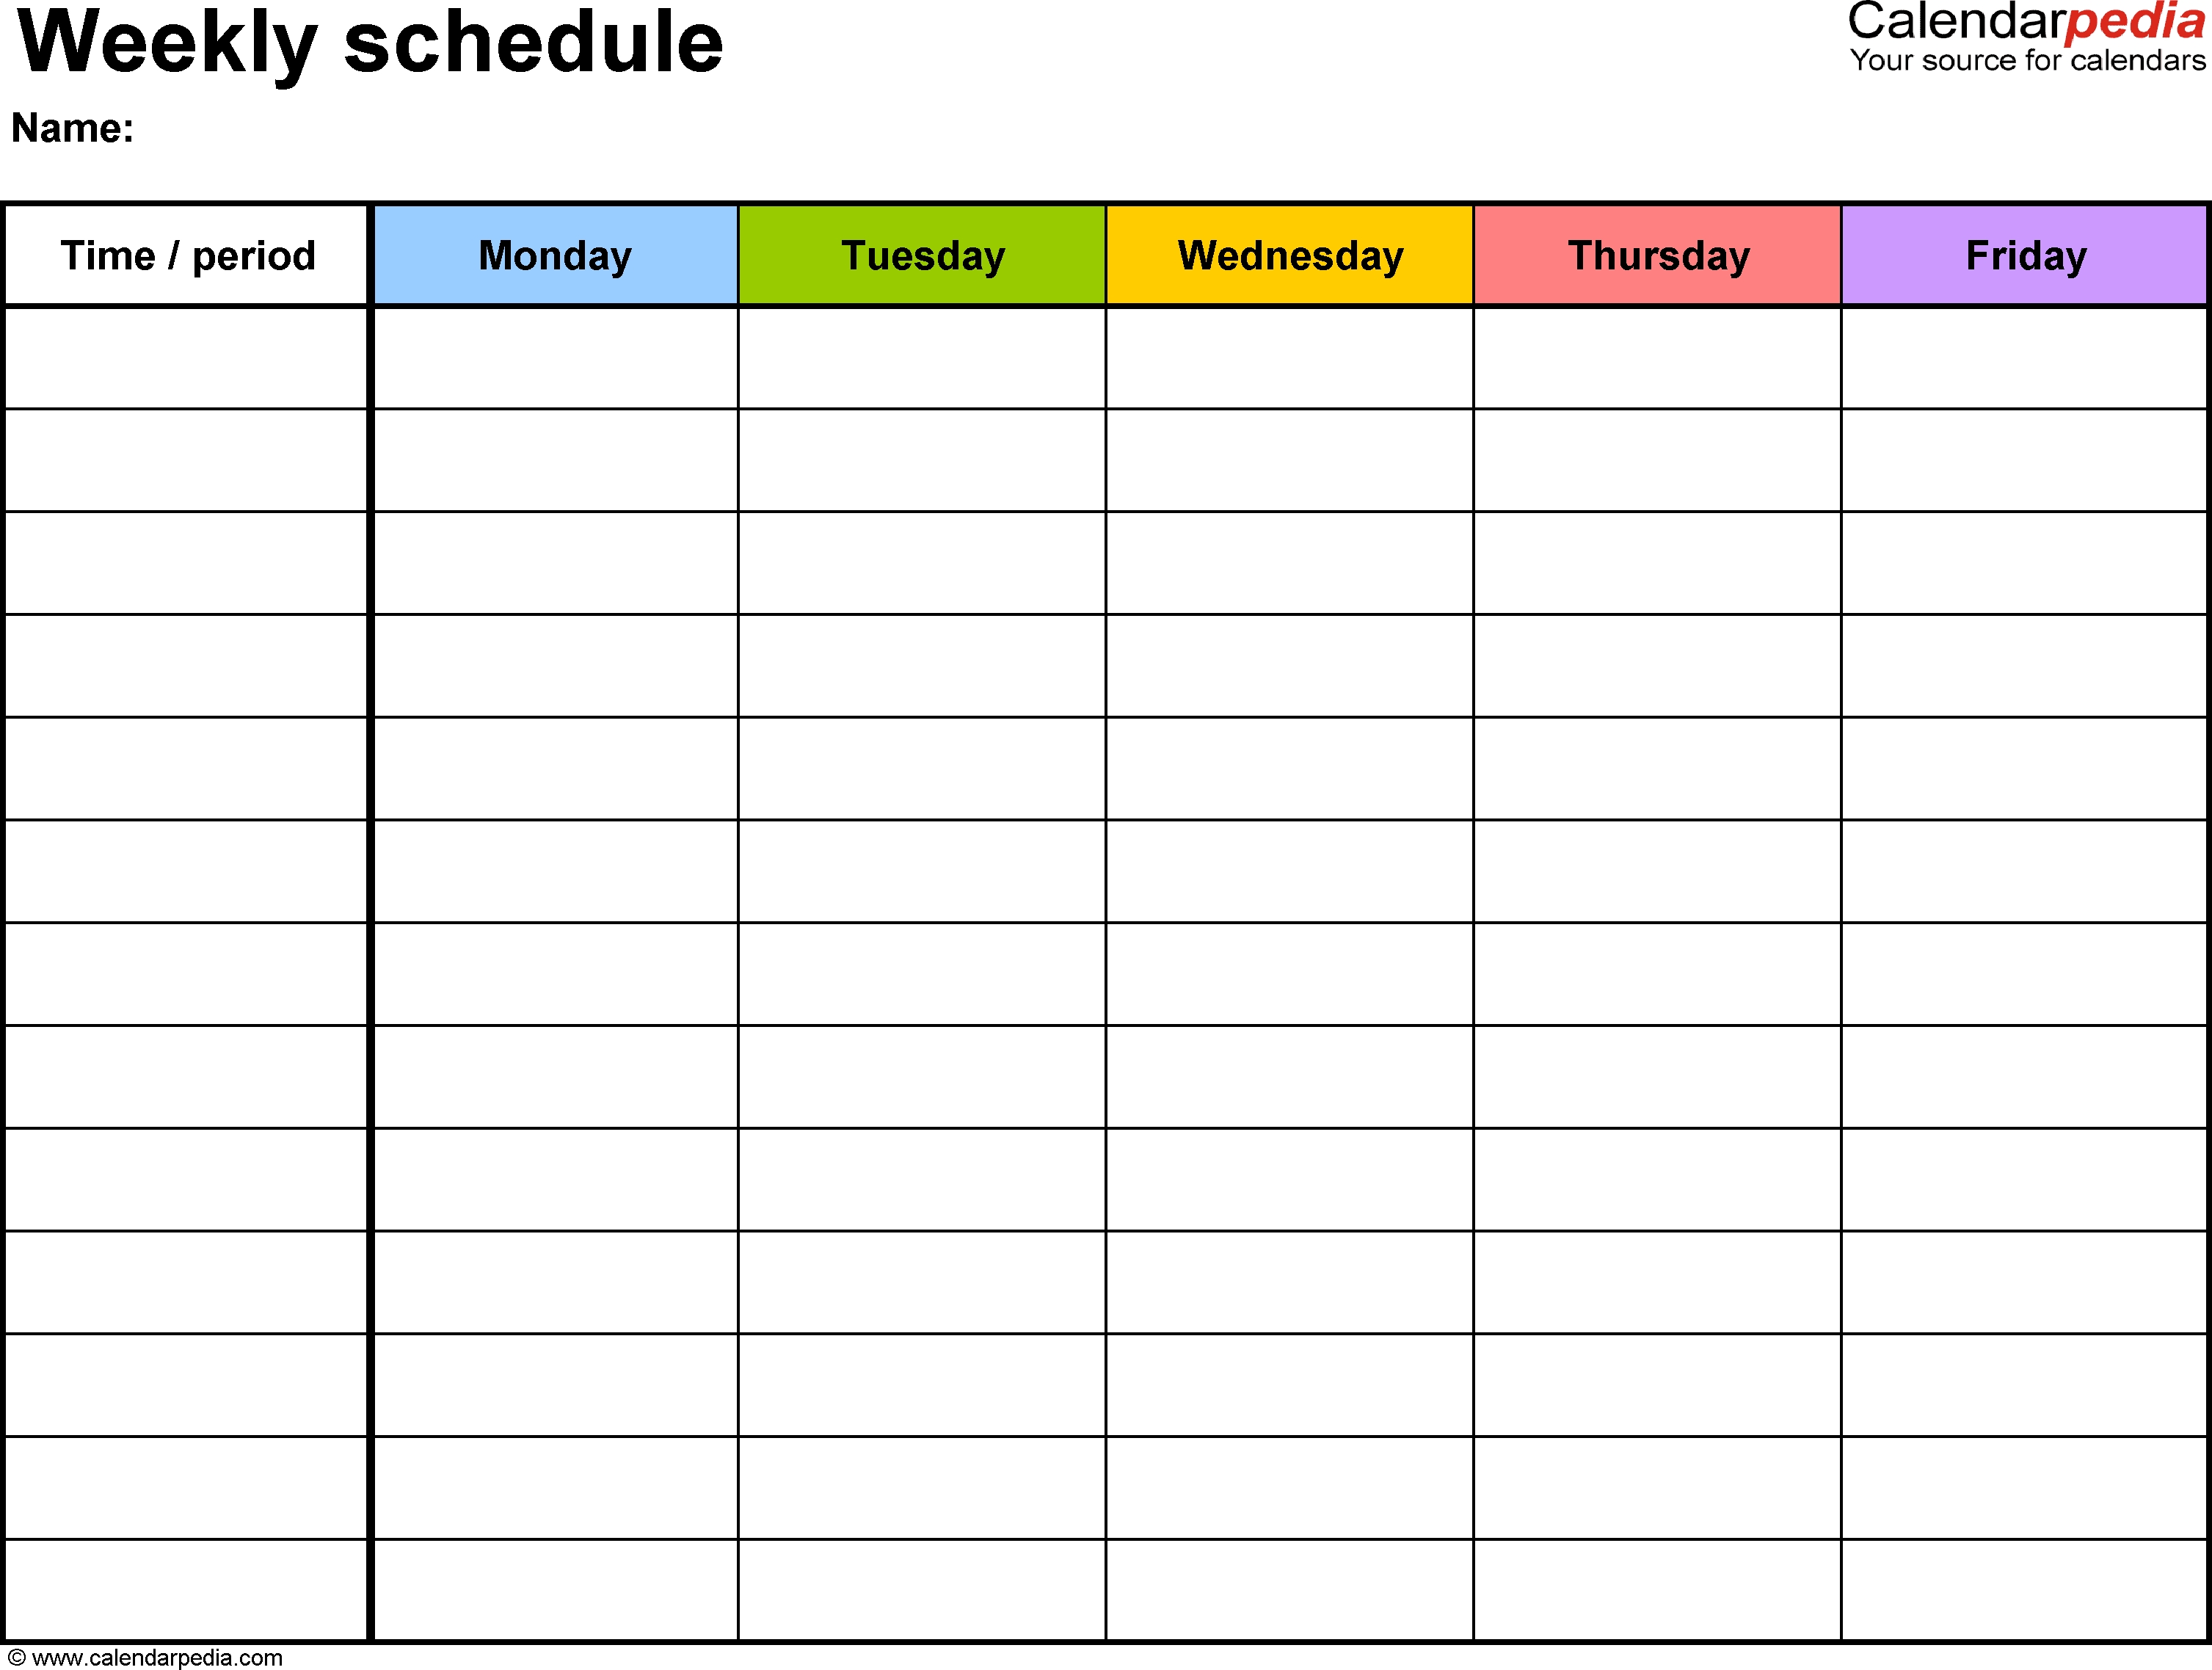 Free Weekly Schedule Templates For Word - 18 Templates in 5 Day Weekly Schedule Template